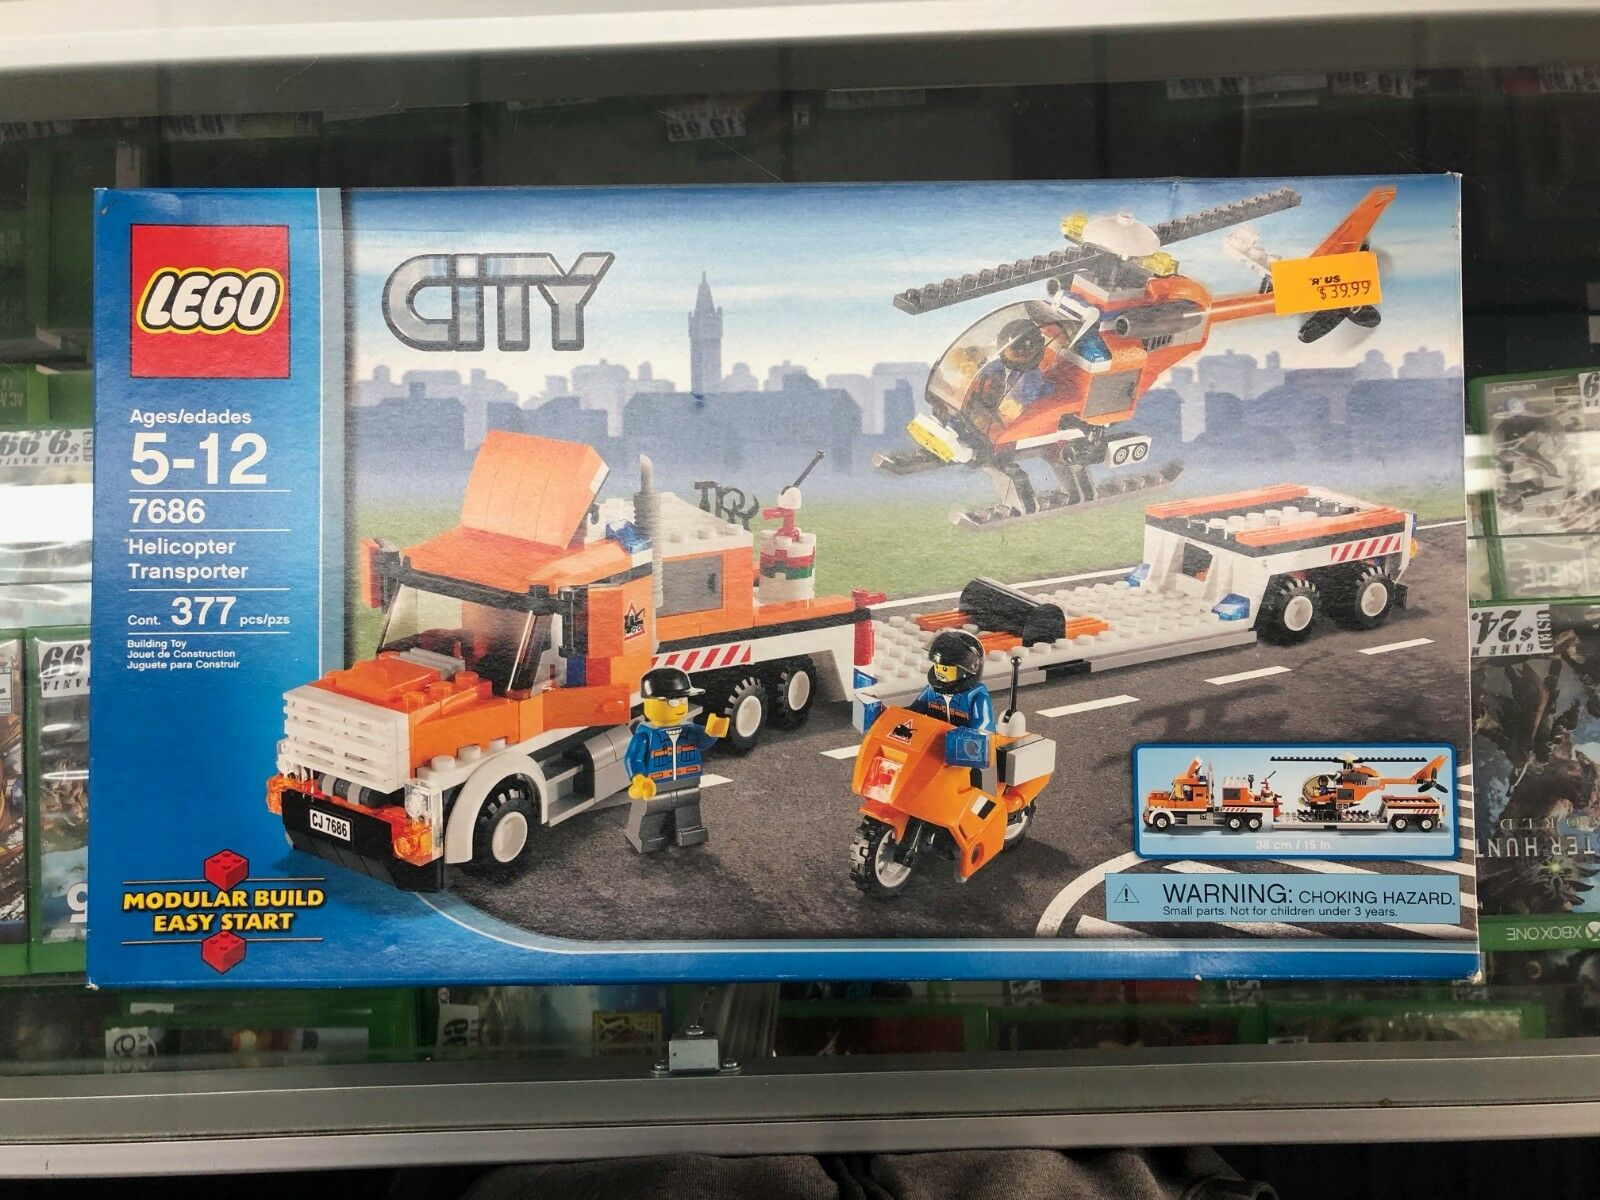 profitto zero Lego Helicopter Helicopter Helicopter Transport 7686 Bre nuovo  distribuzione globale